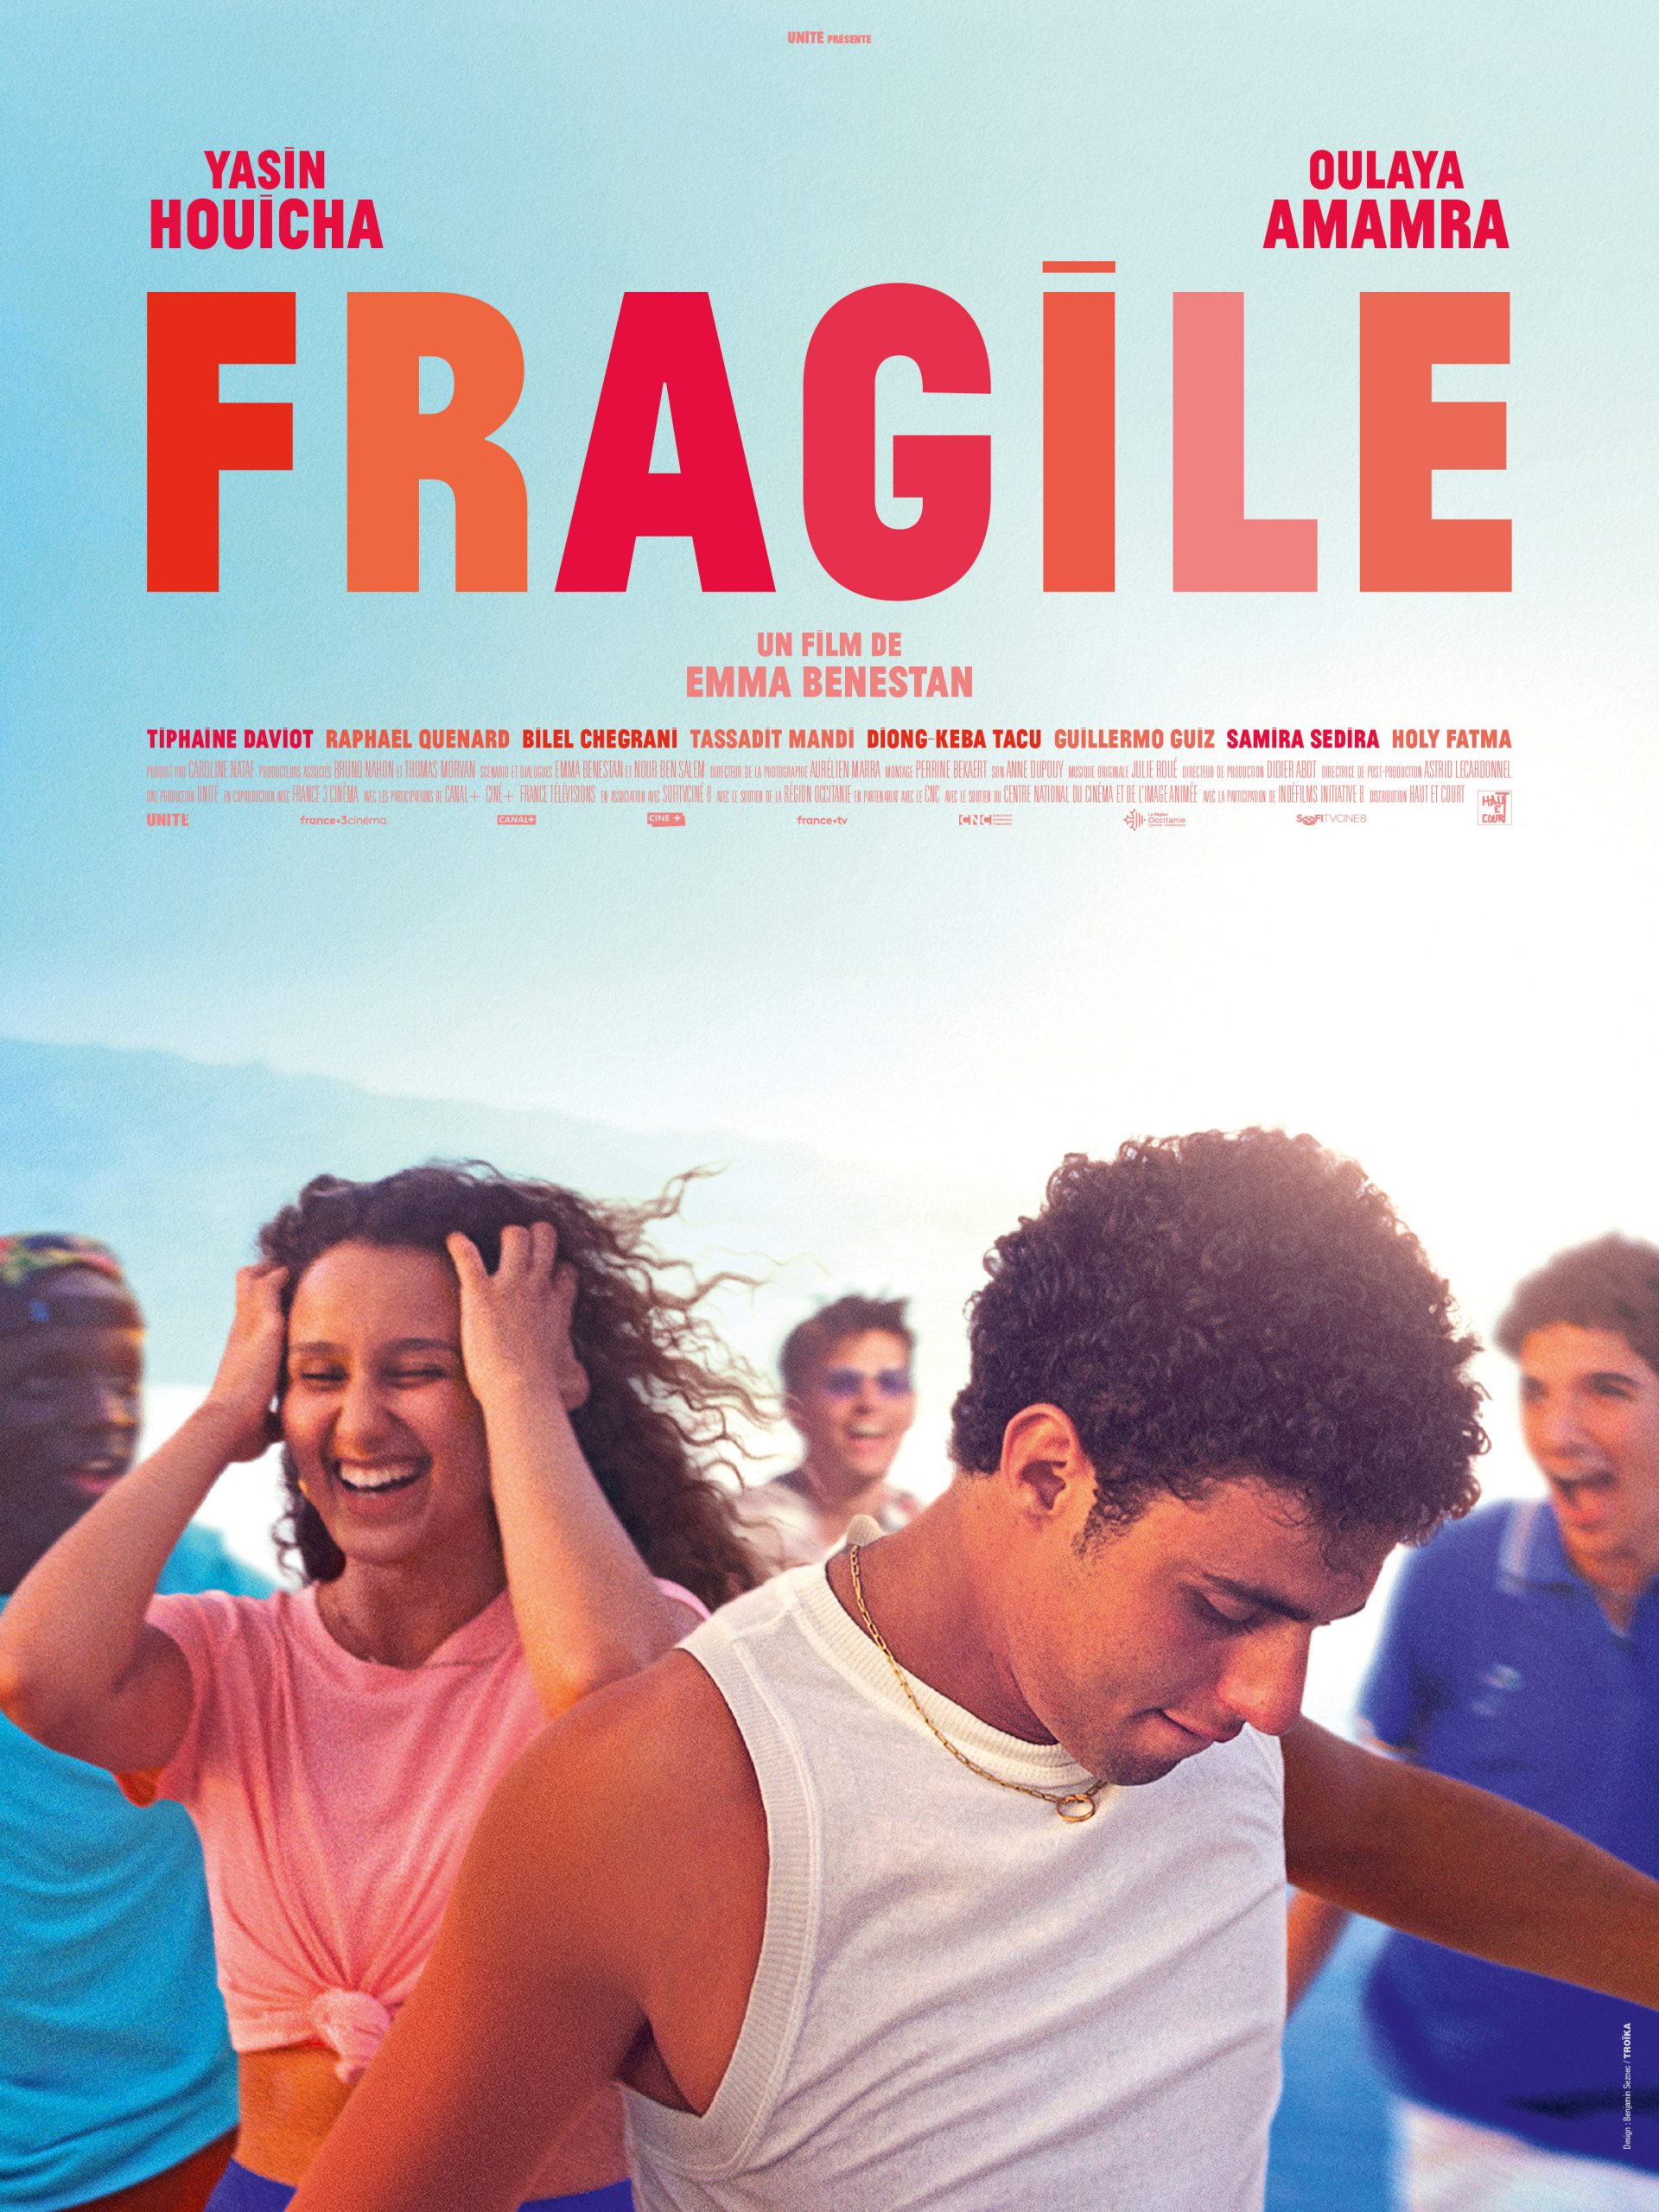 Download Fragile (2021) Full Movie [In French] With Hindi Subtitles | CAMRip 720p [1XBET] FREE on 1XCinema.com & KatMovieHD.sk